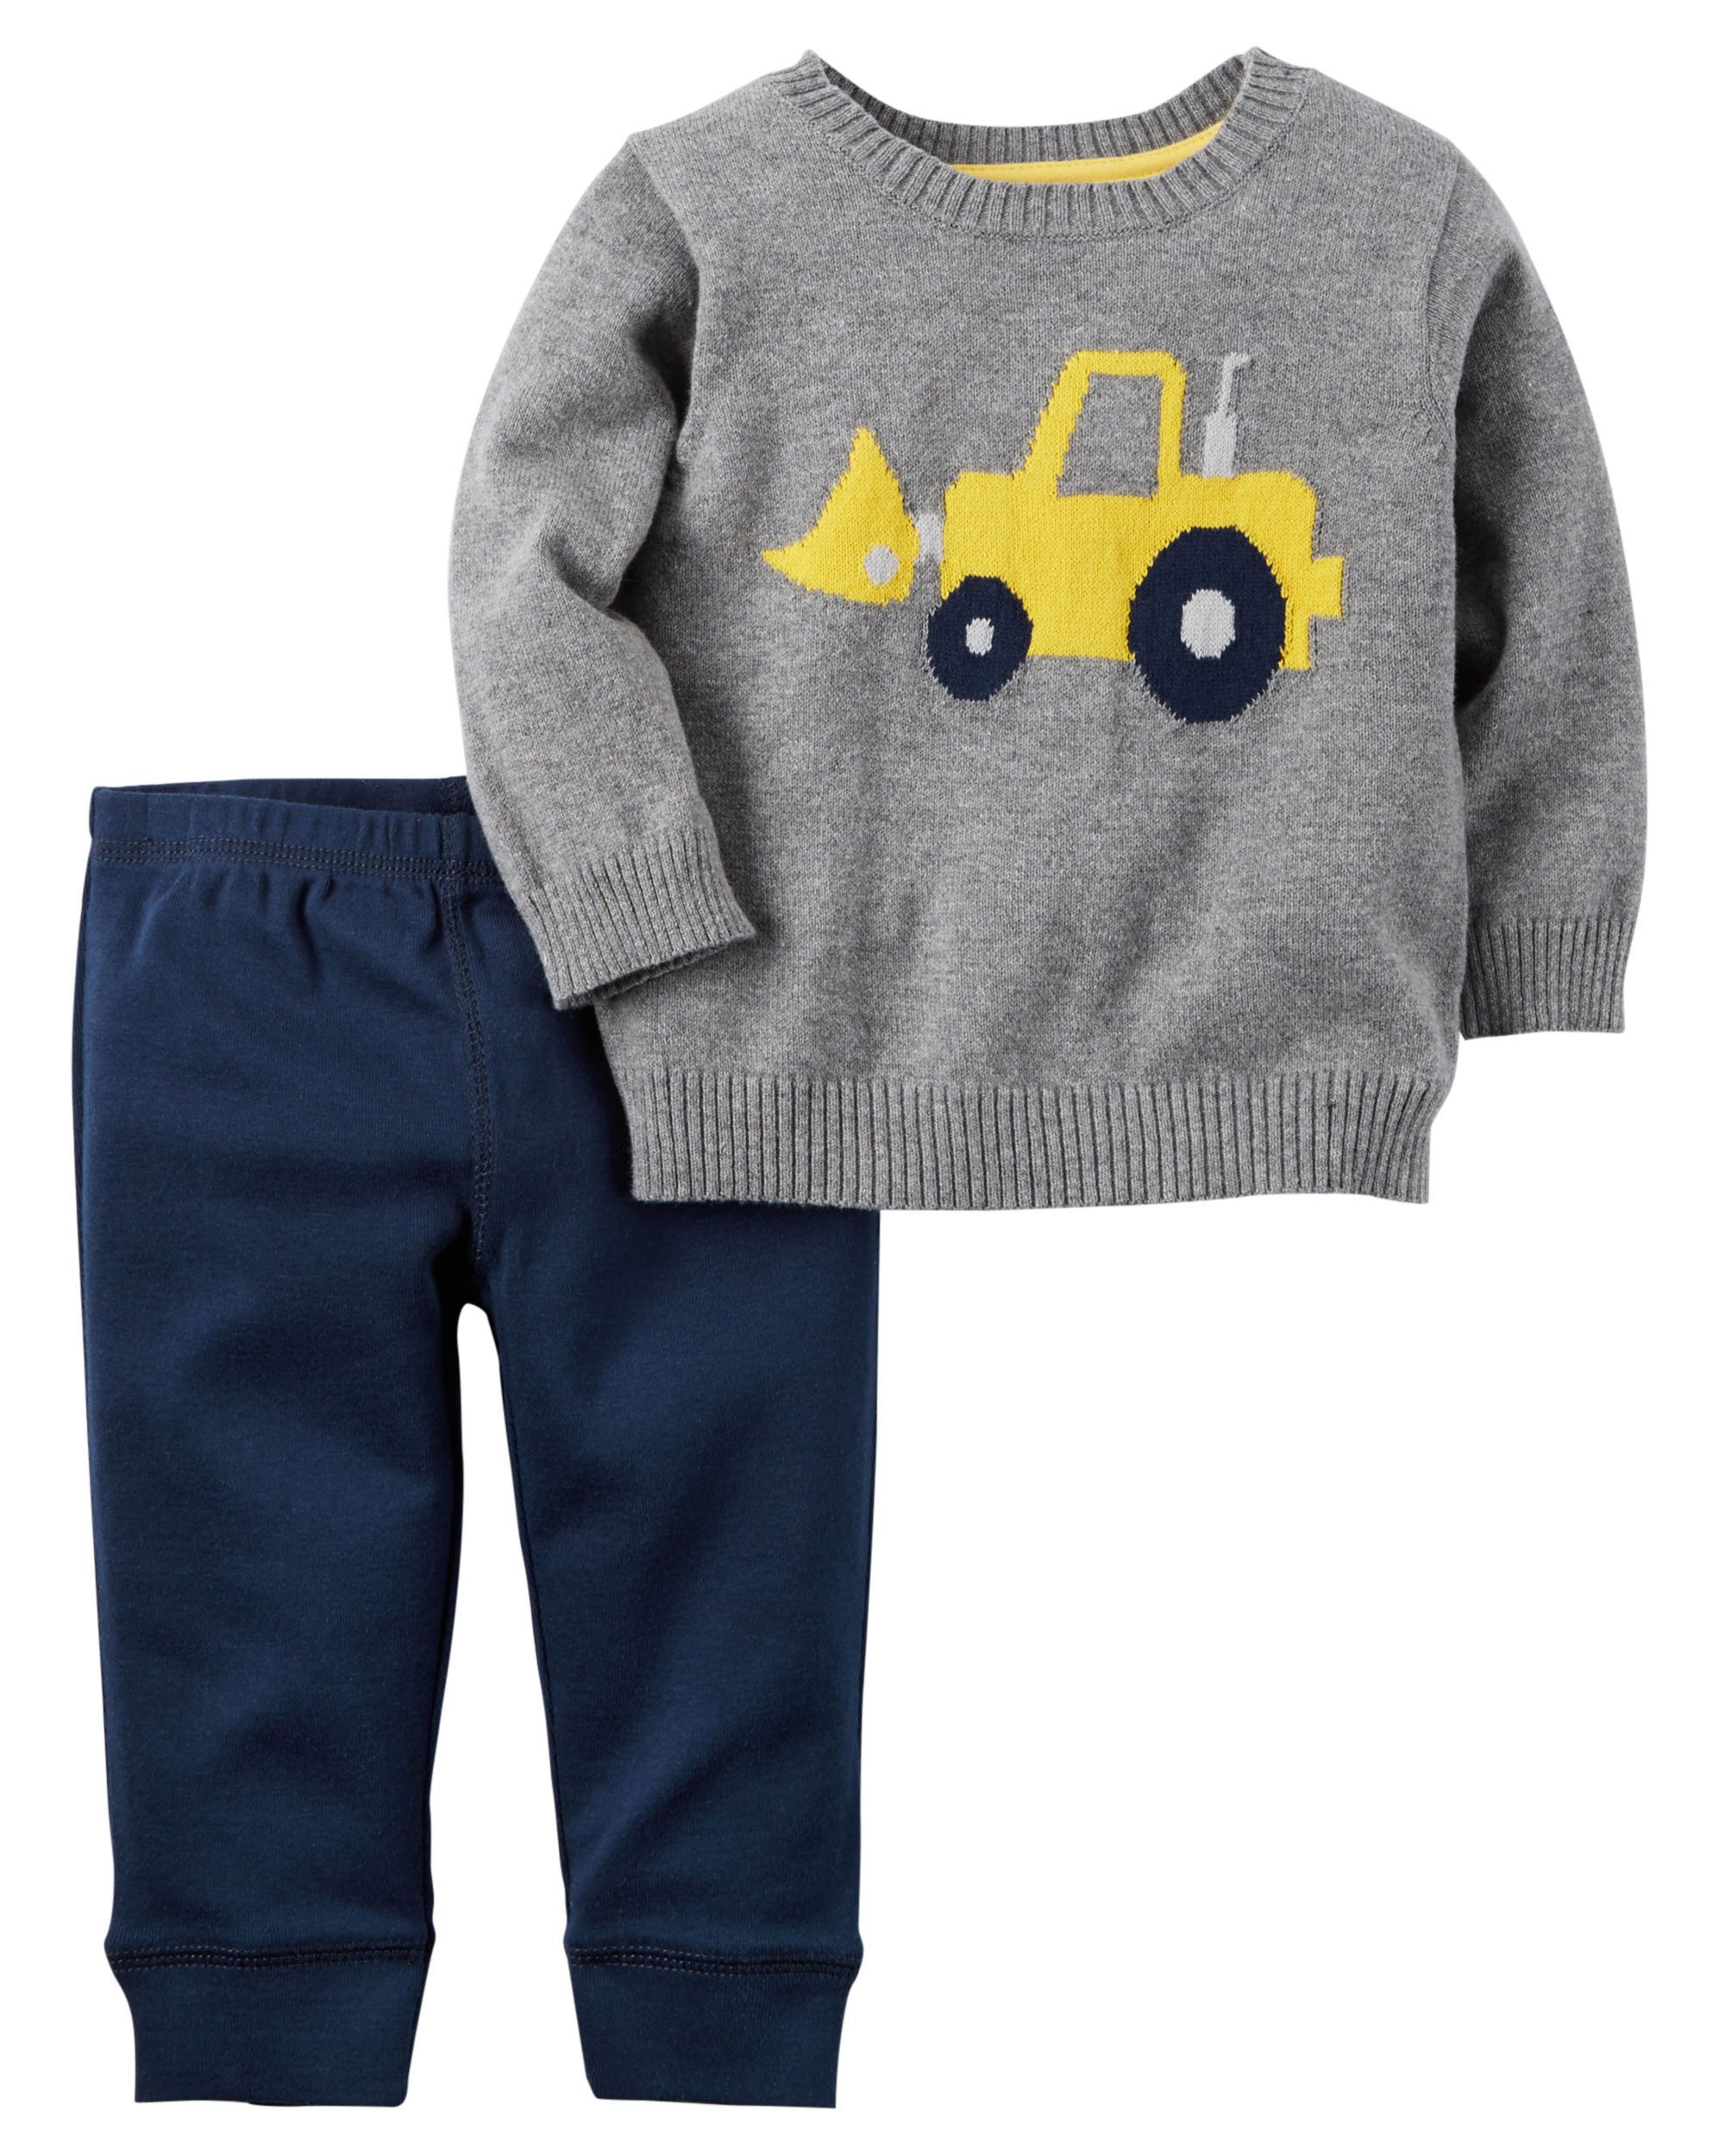 9e144a0eb Baby Boy 2-Piece Little Sweater Set from Carters.com. Shop clothing ...